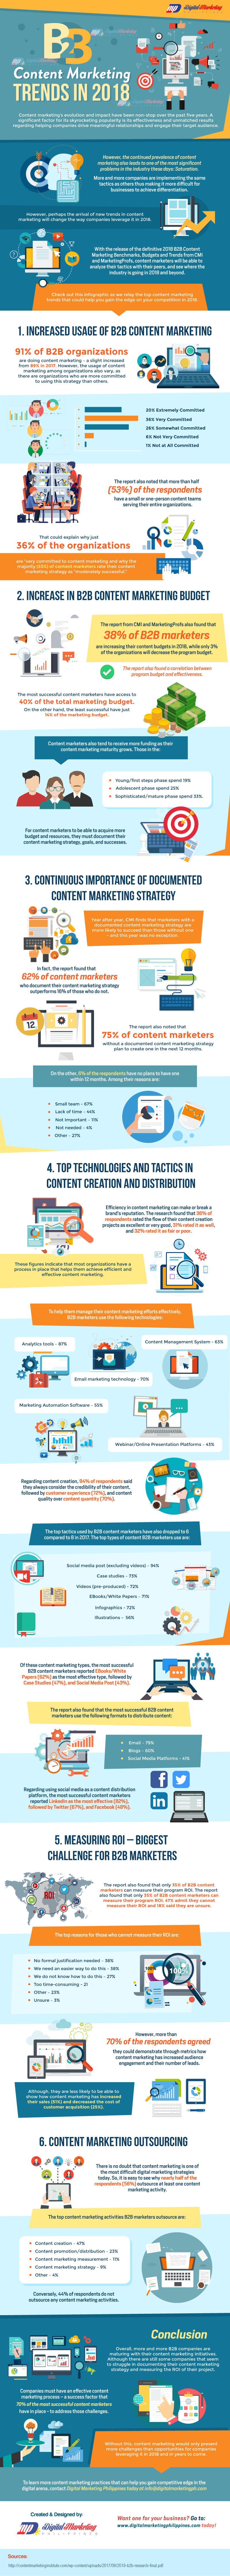 B2B_Content_Marketing_Trends_in_2018-01